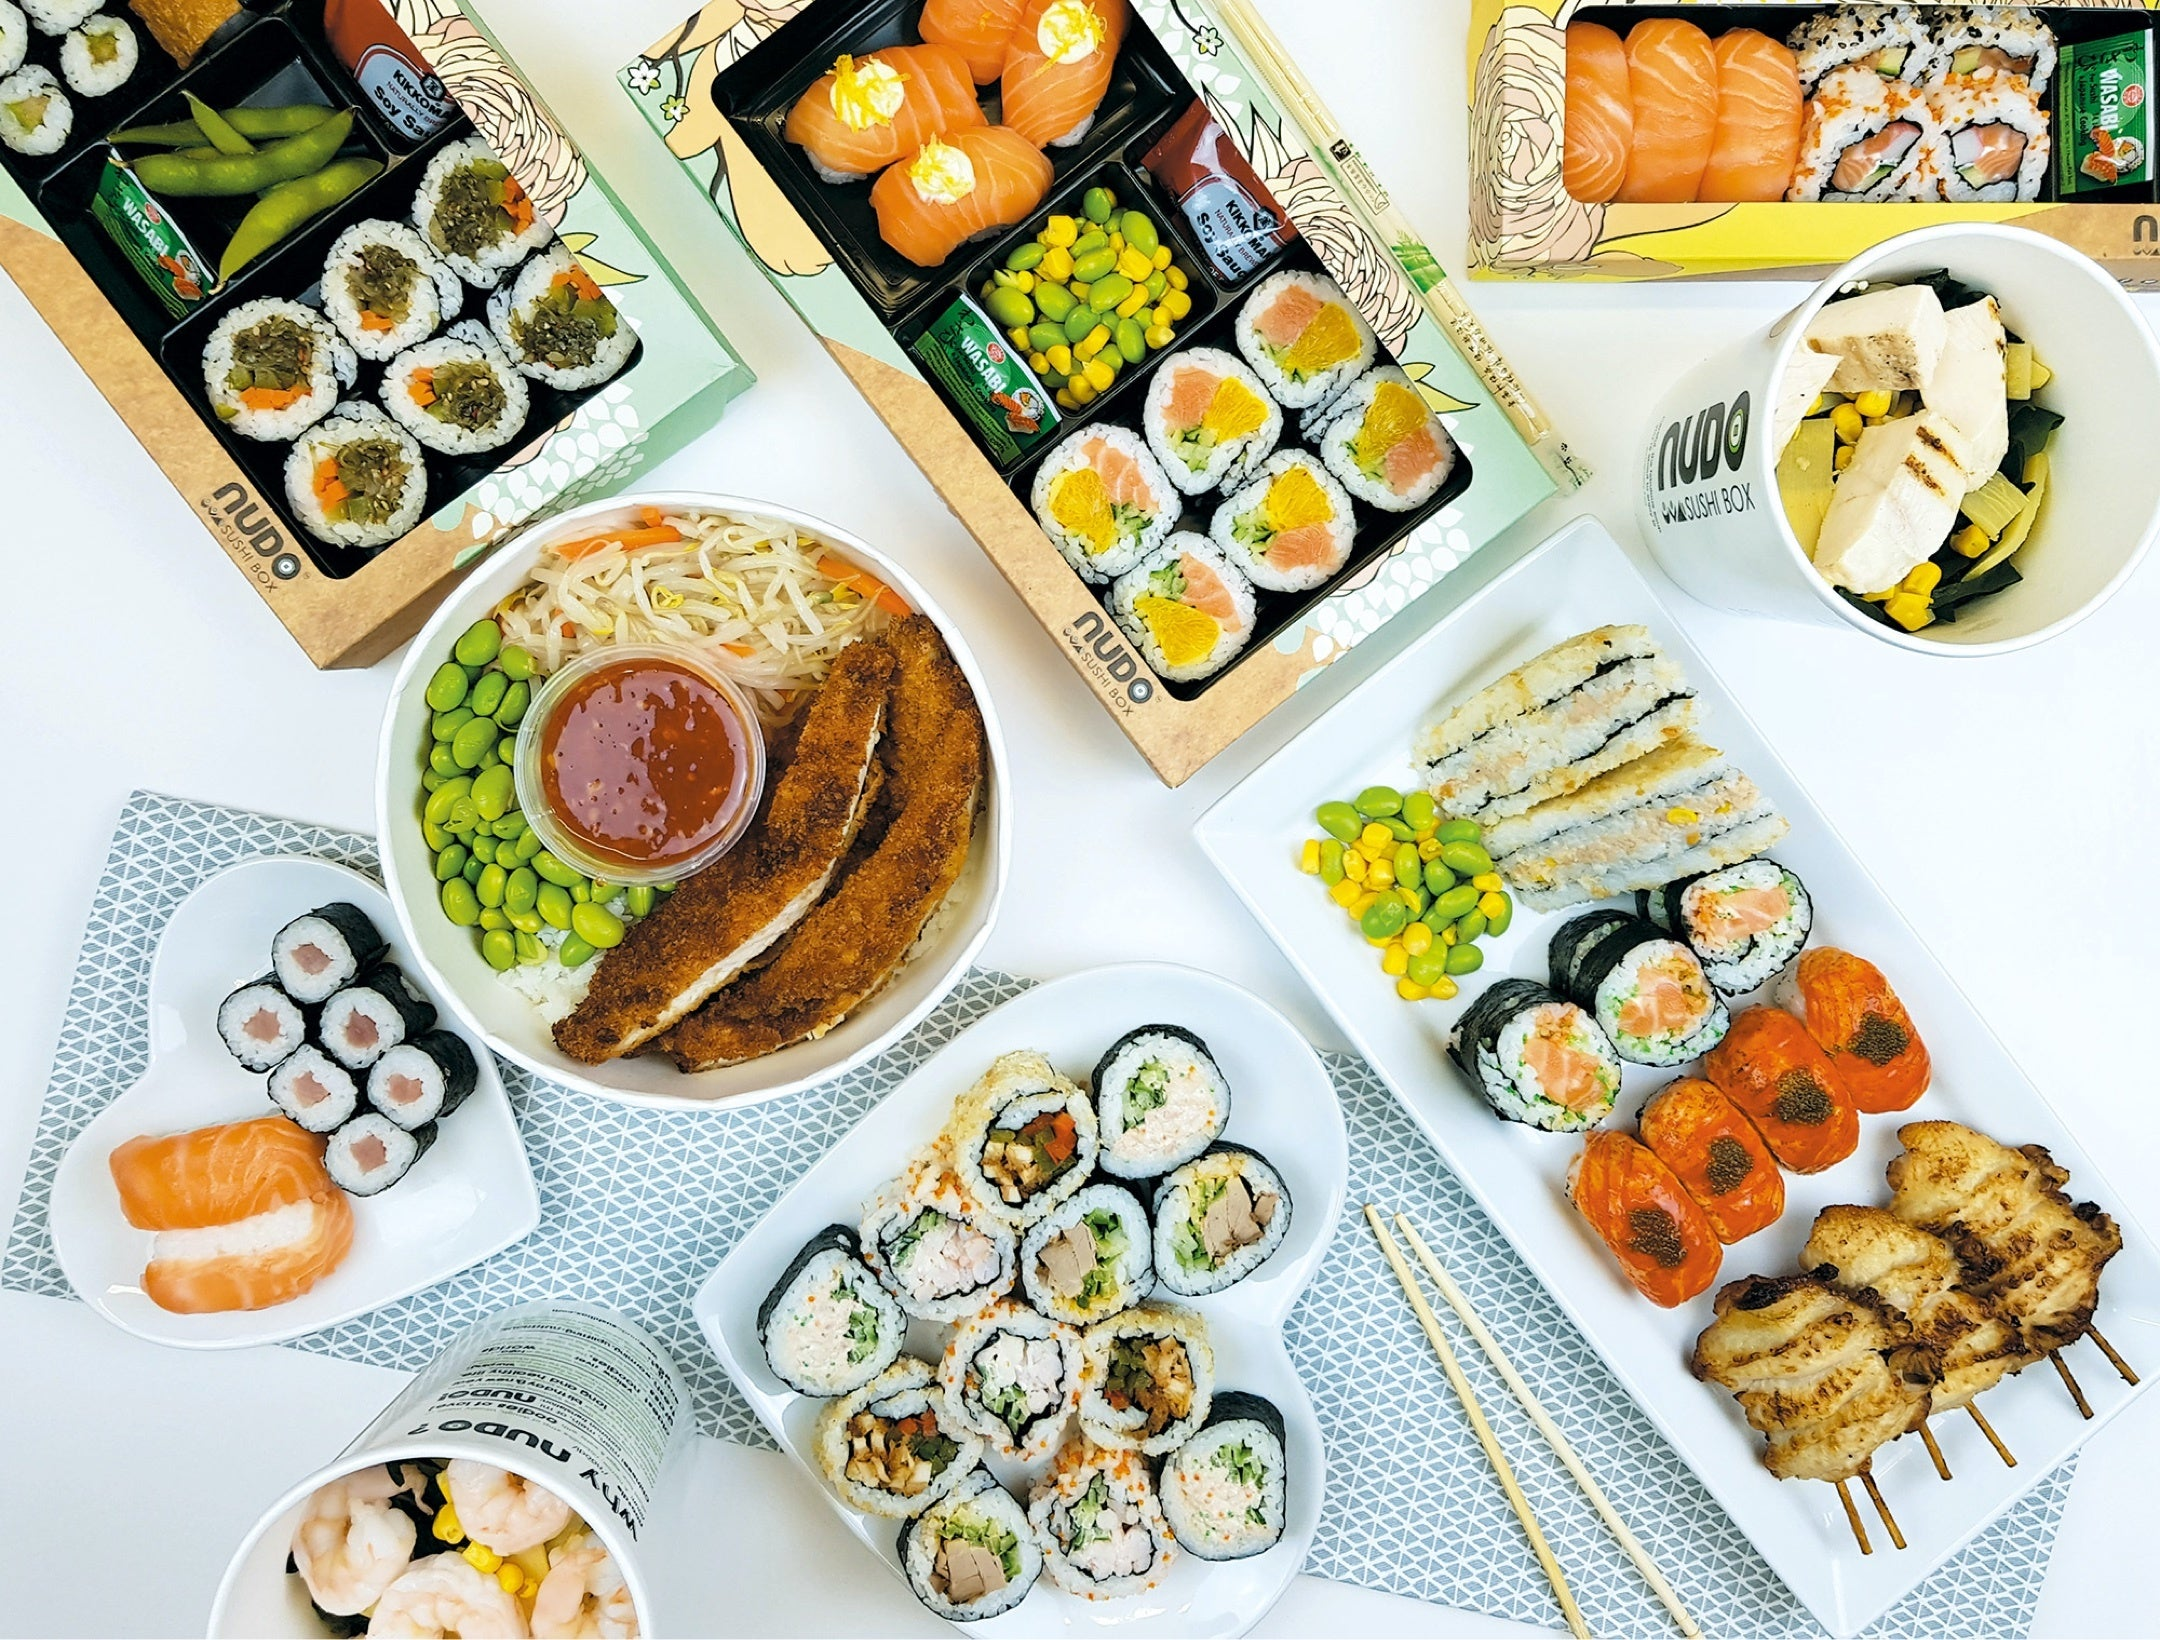 A selection of Nudo Sushi Box products